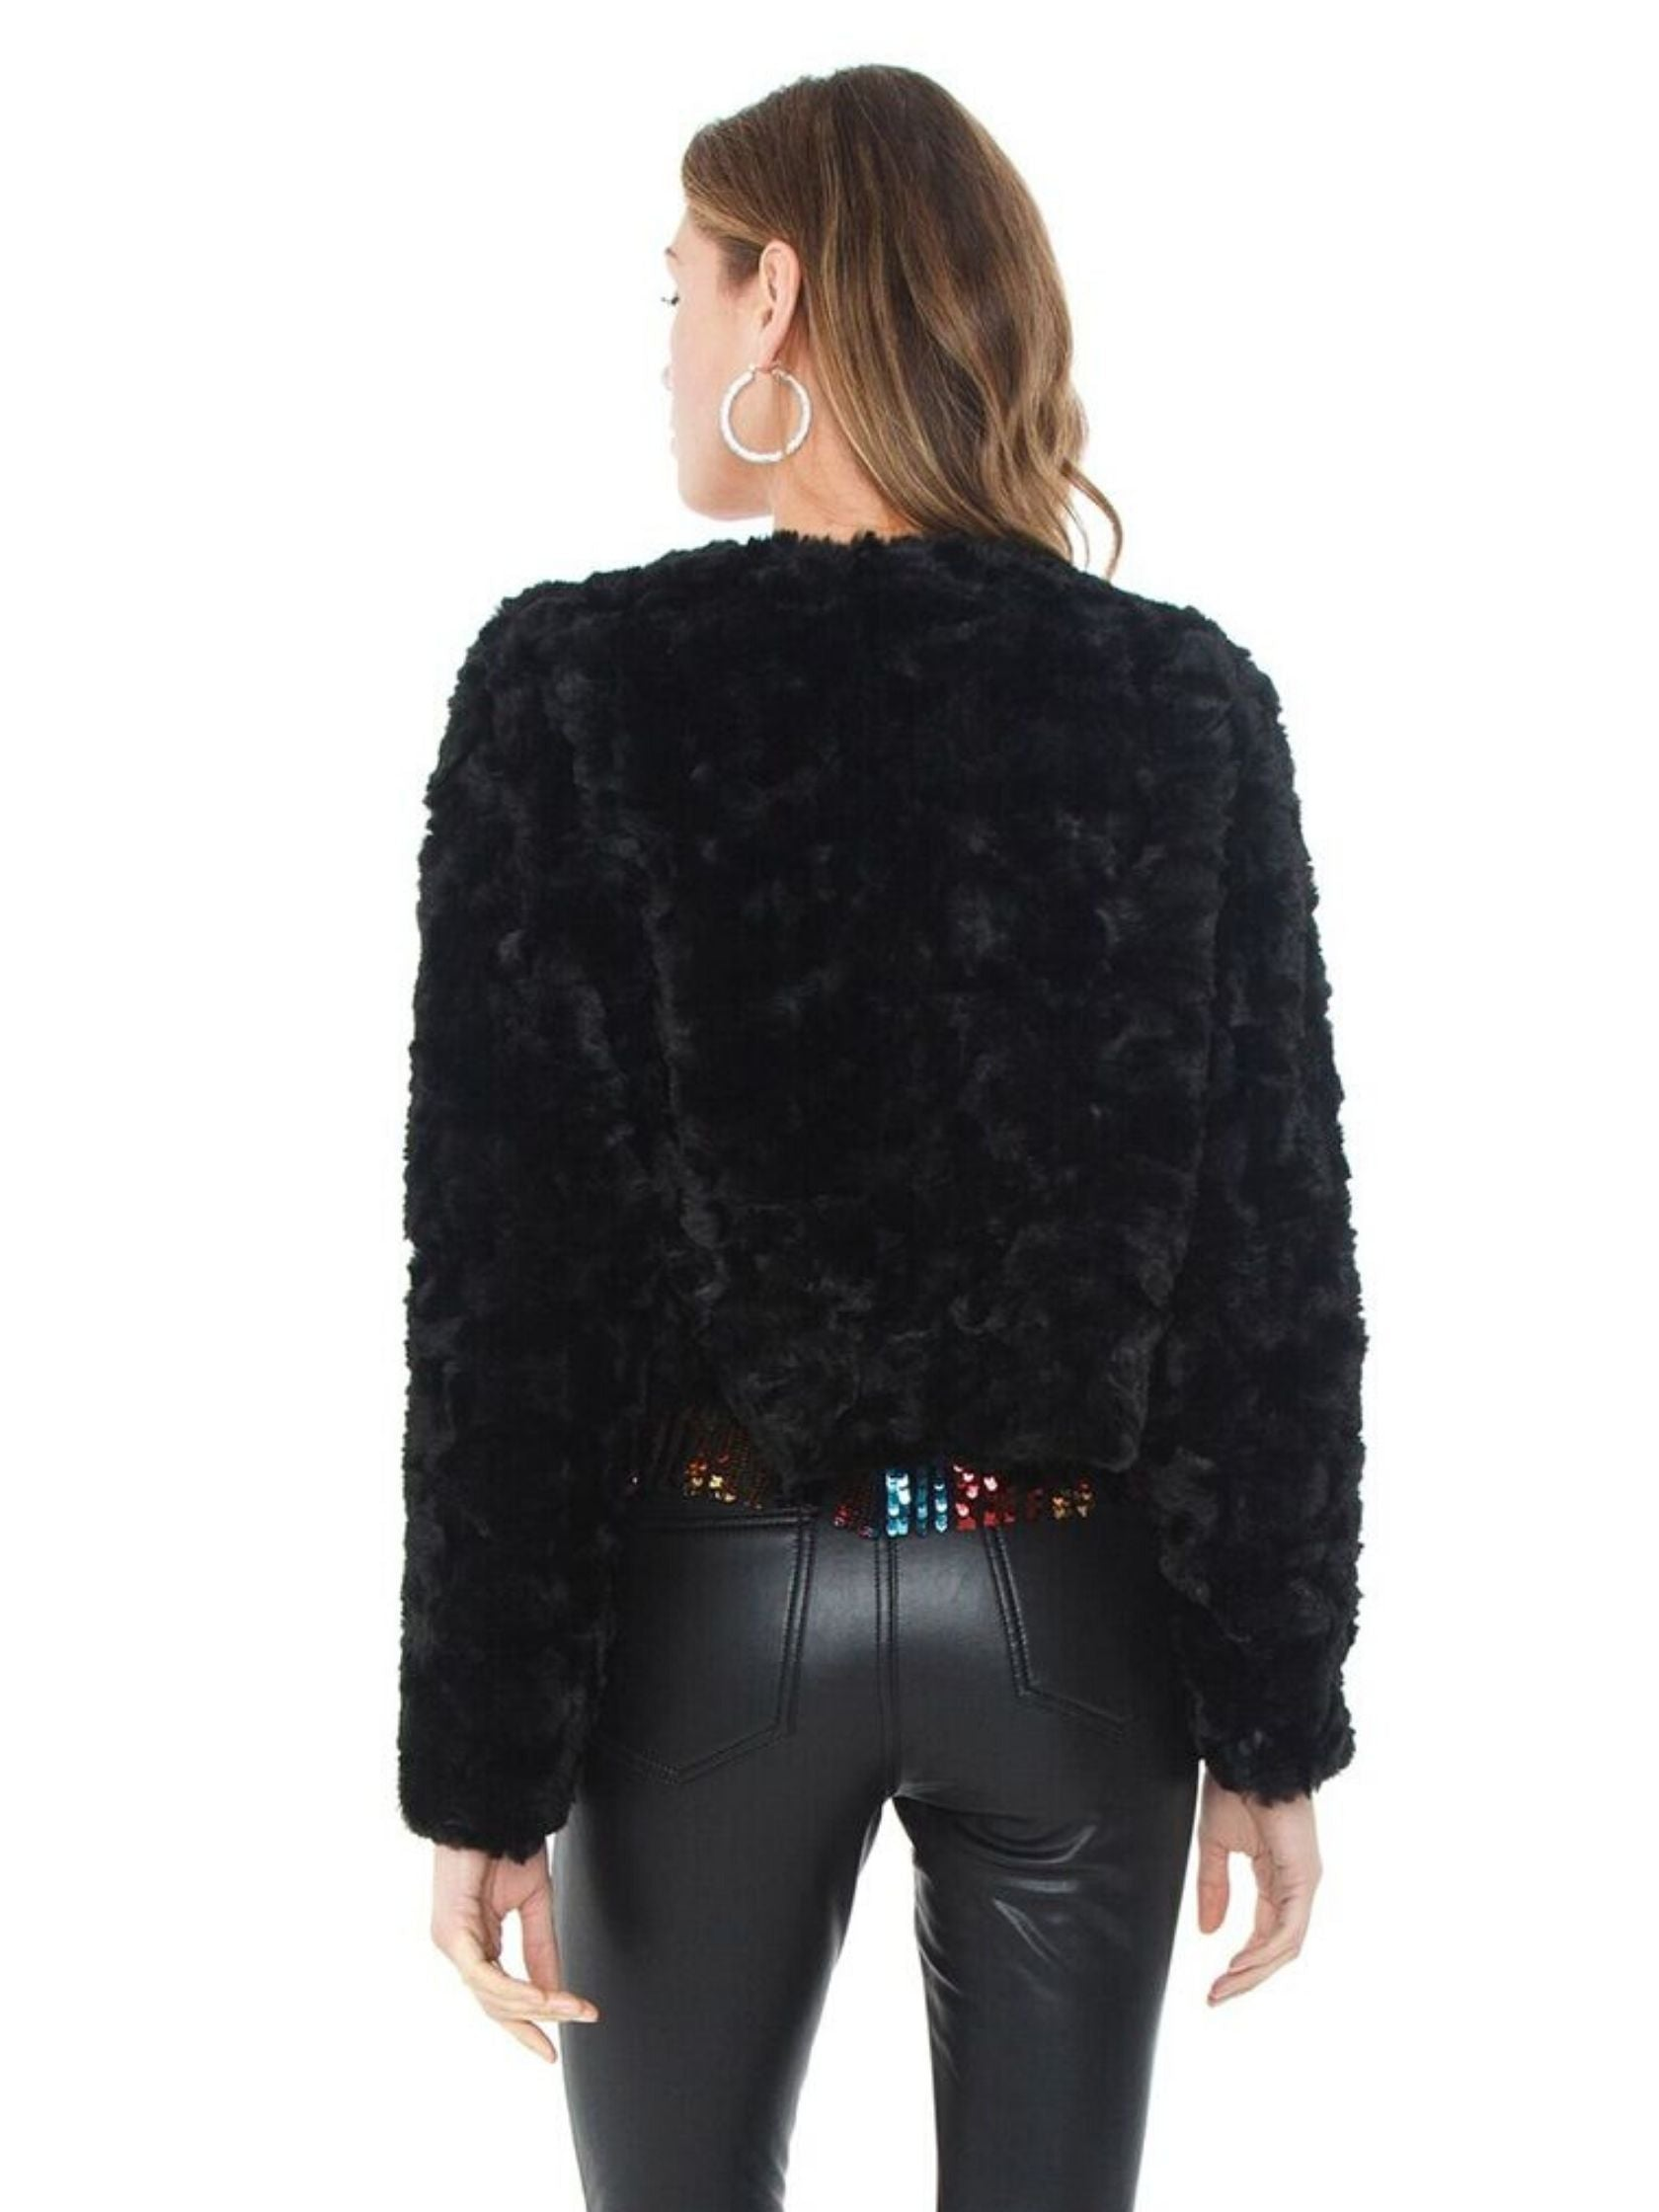 Women outfit in a jacket rental from Line & Dot called Faux Fur Jacket